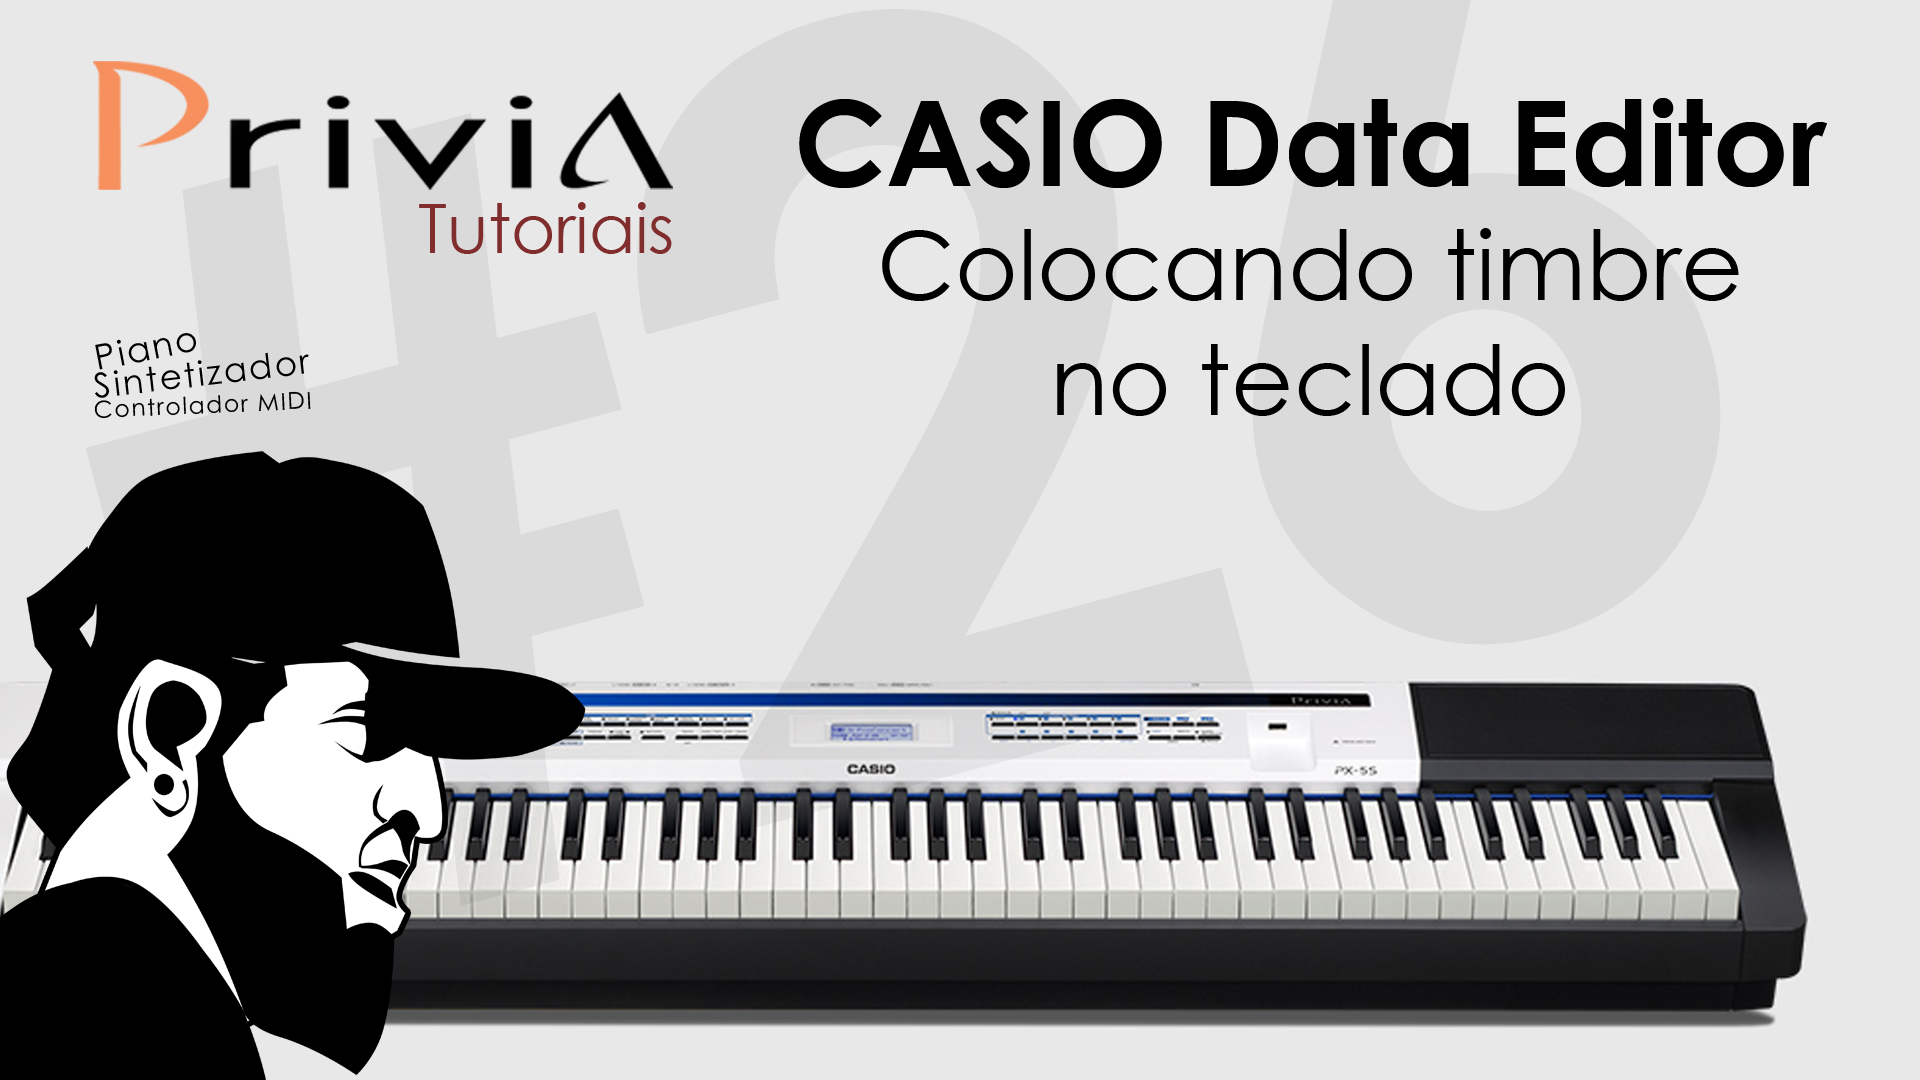 Como Colocar Timbres No Teclado Usando o Software Editor | Tutorial Casio Privia PX-5S #26